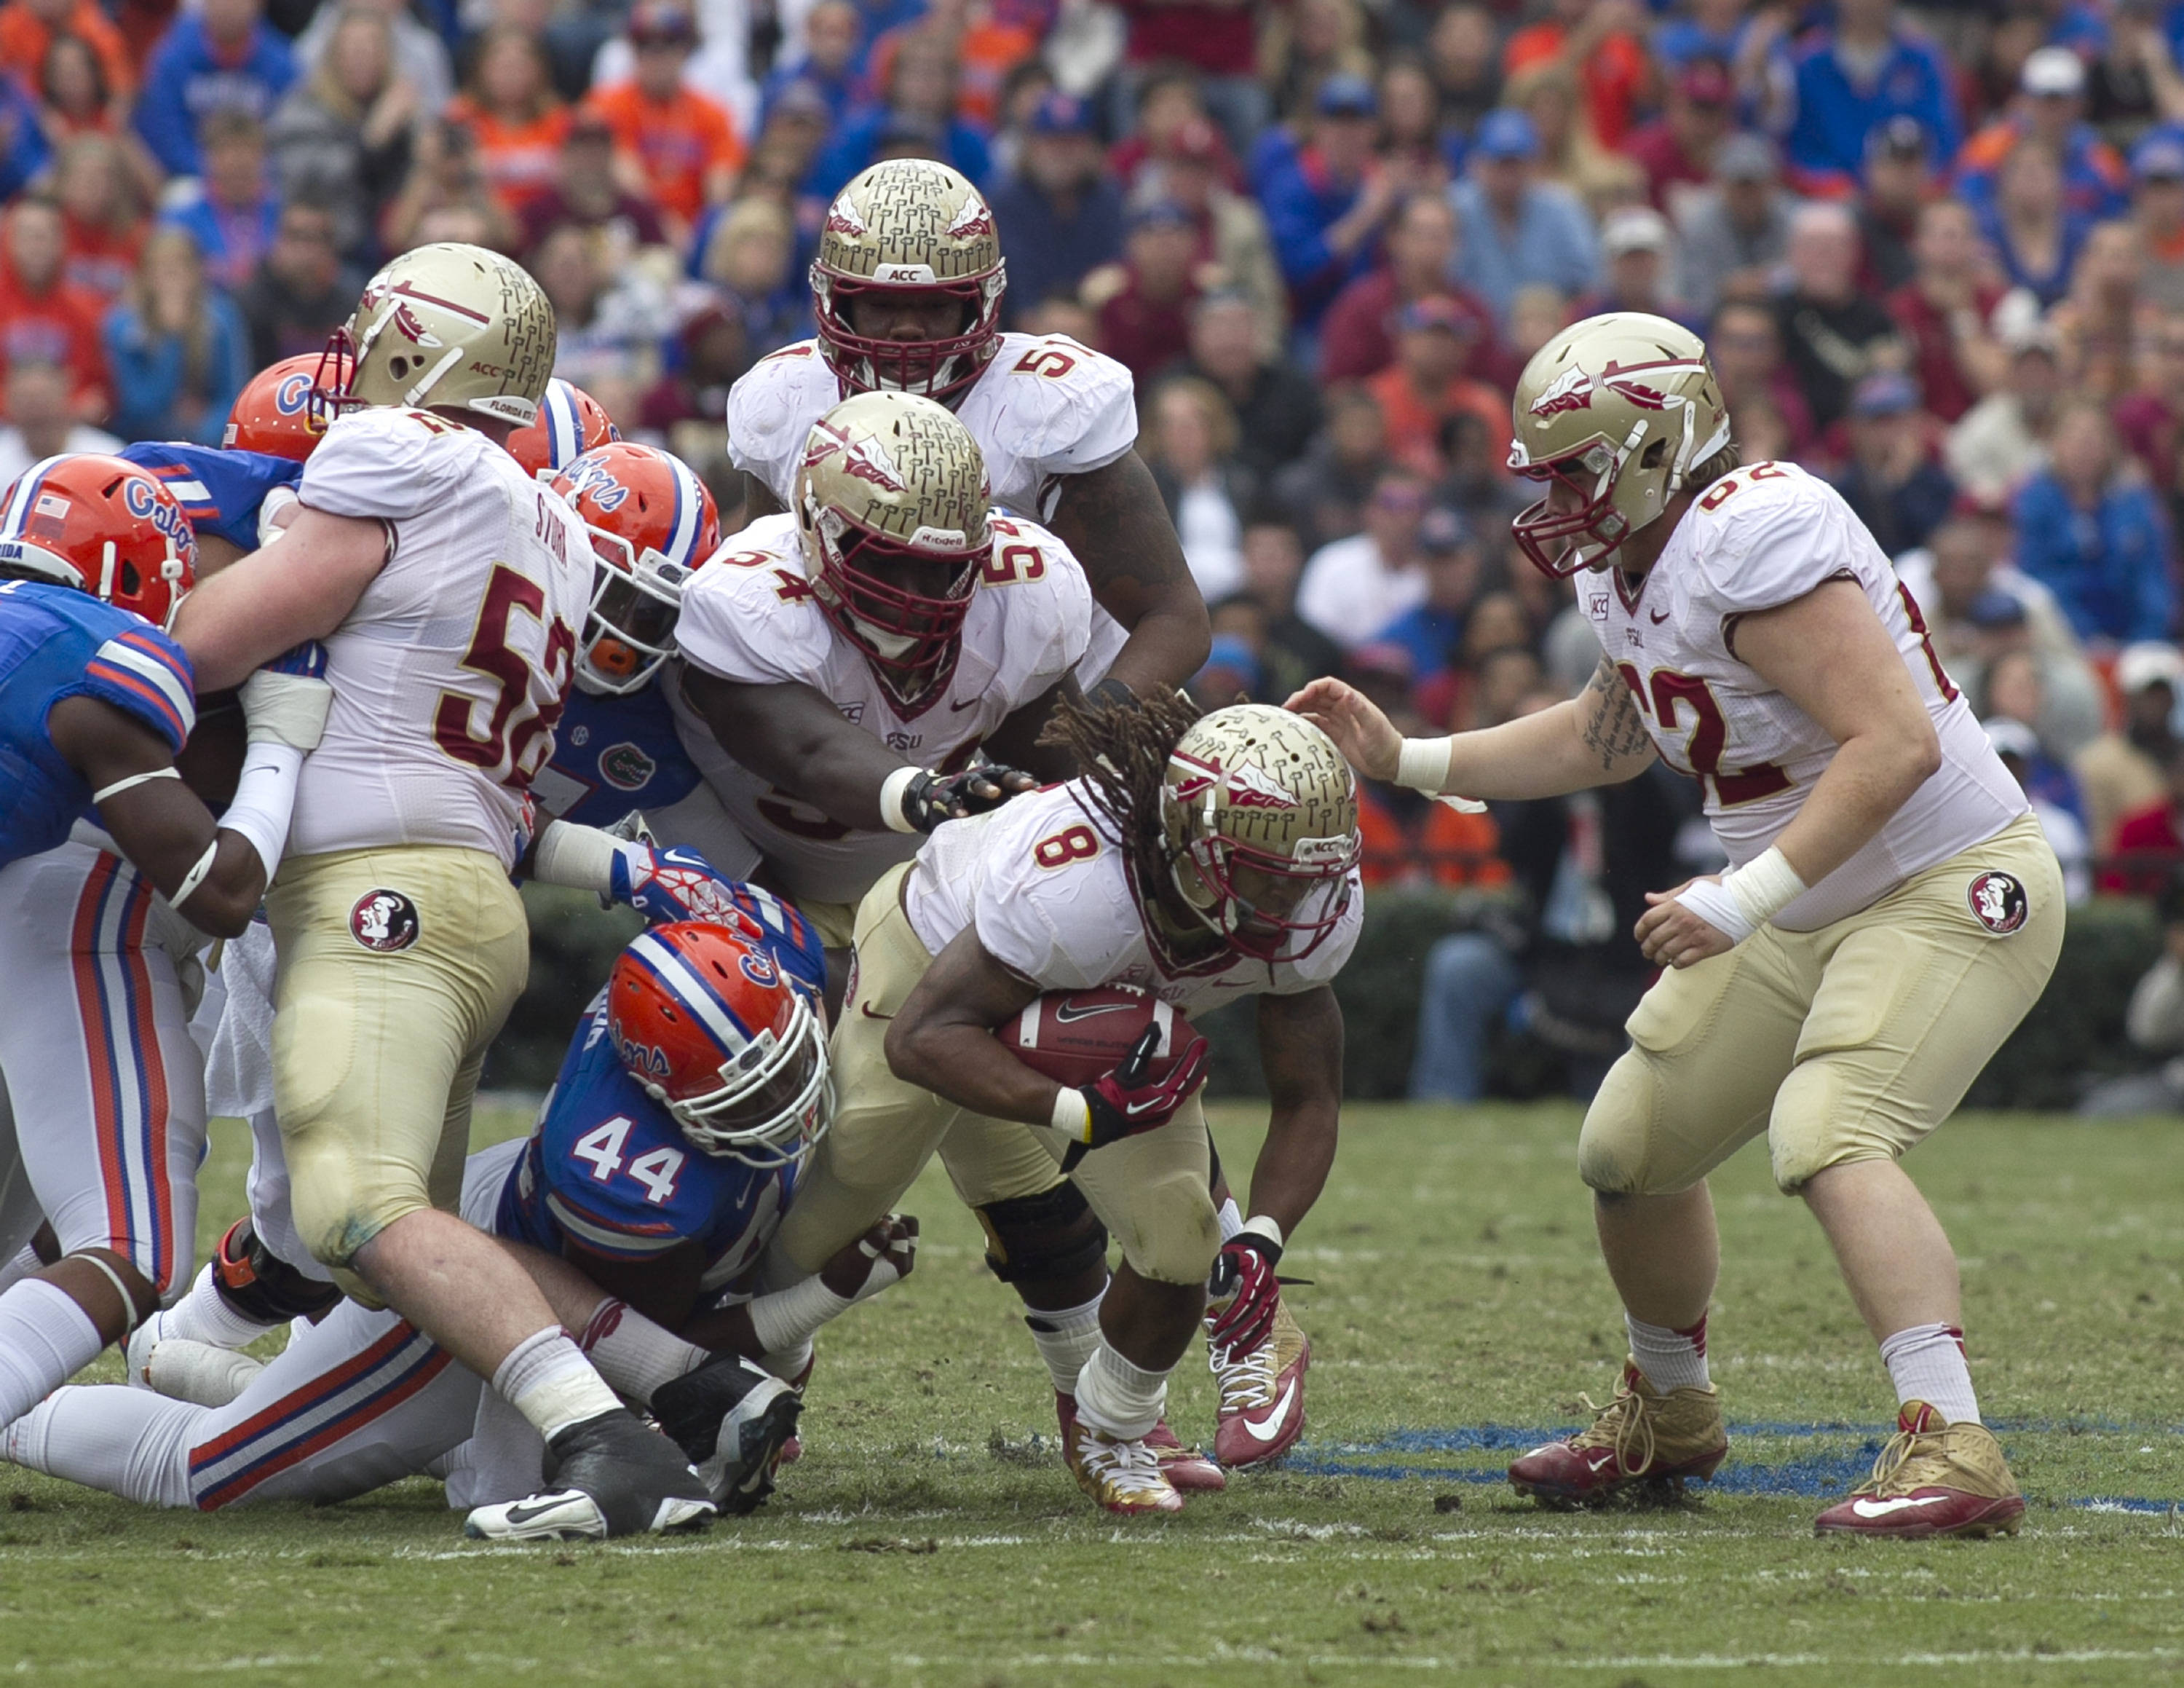 Devonta Freeman (8) with hard earned running yards, FSU vs Florida, 11-30-13,  (Photo by Steve Musco)